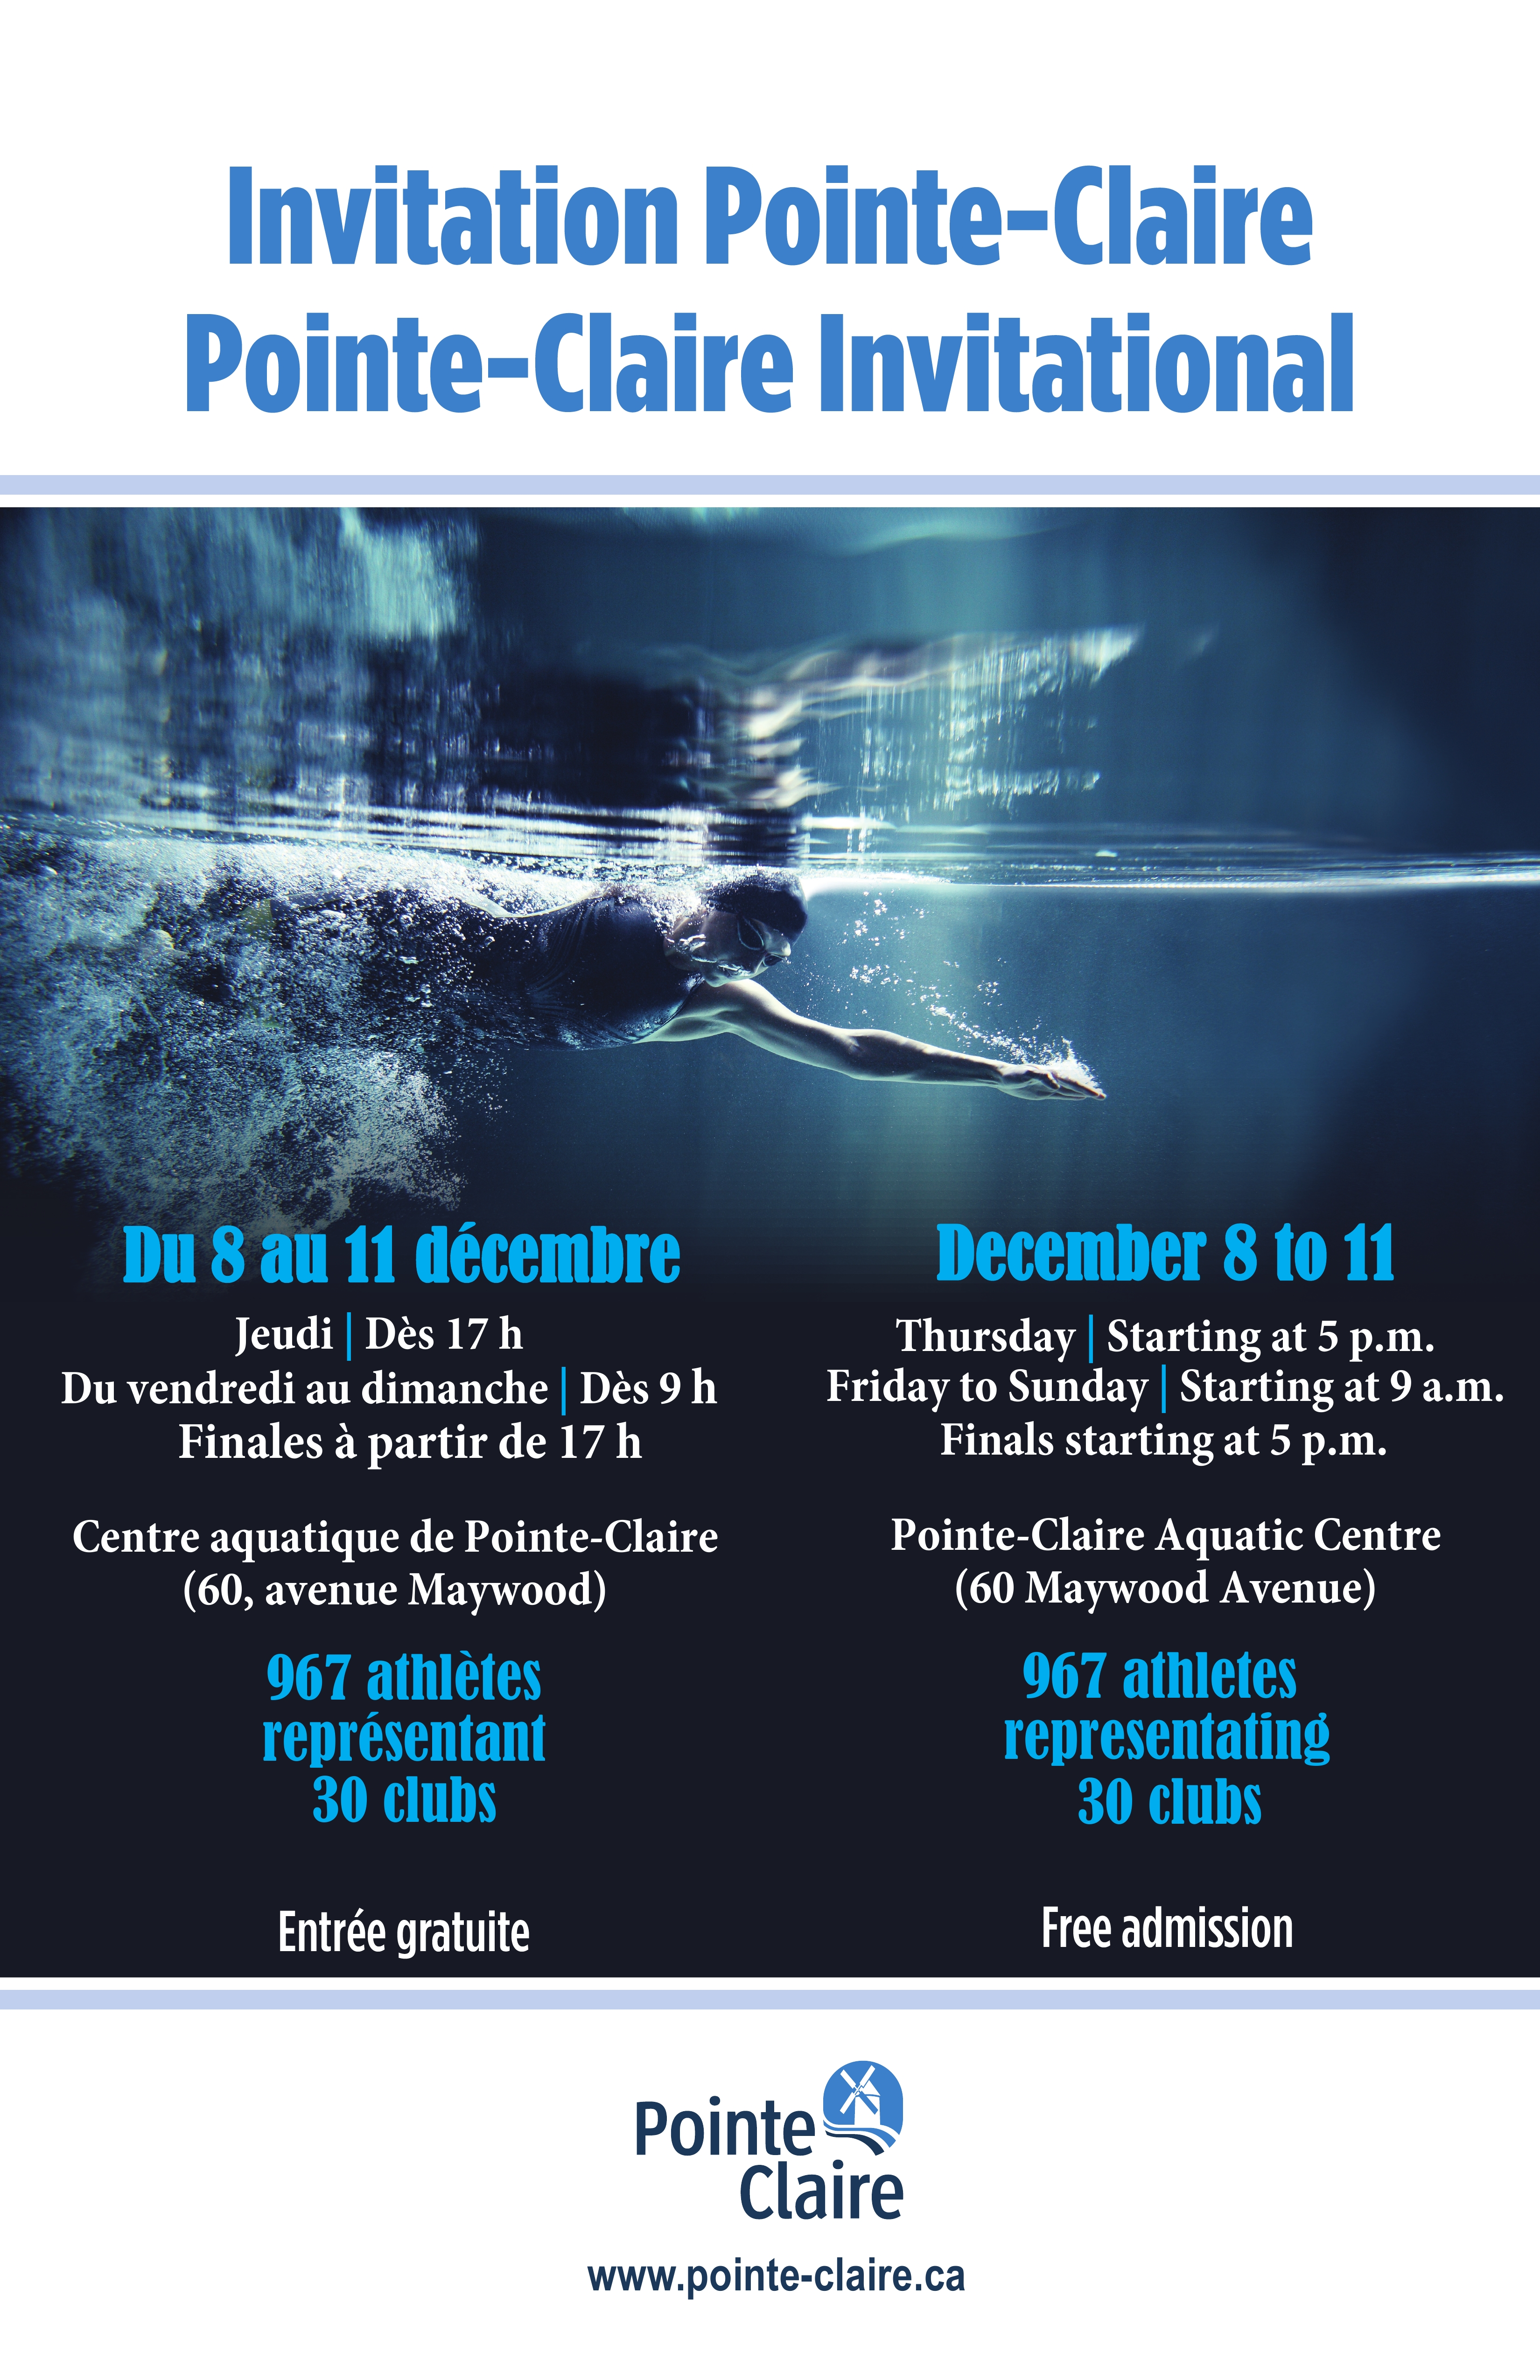 Pointe claire invitational ville de pointe claire for Pointe claire swimming pool schedule